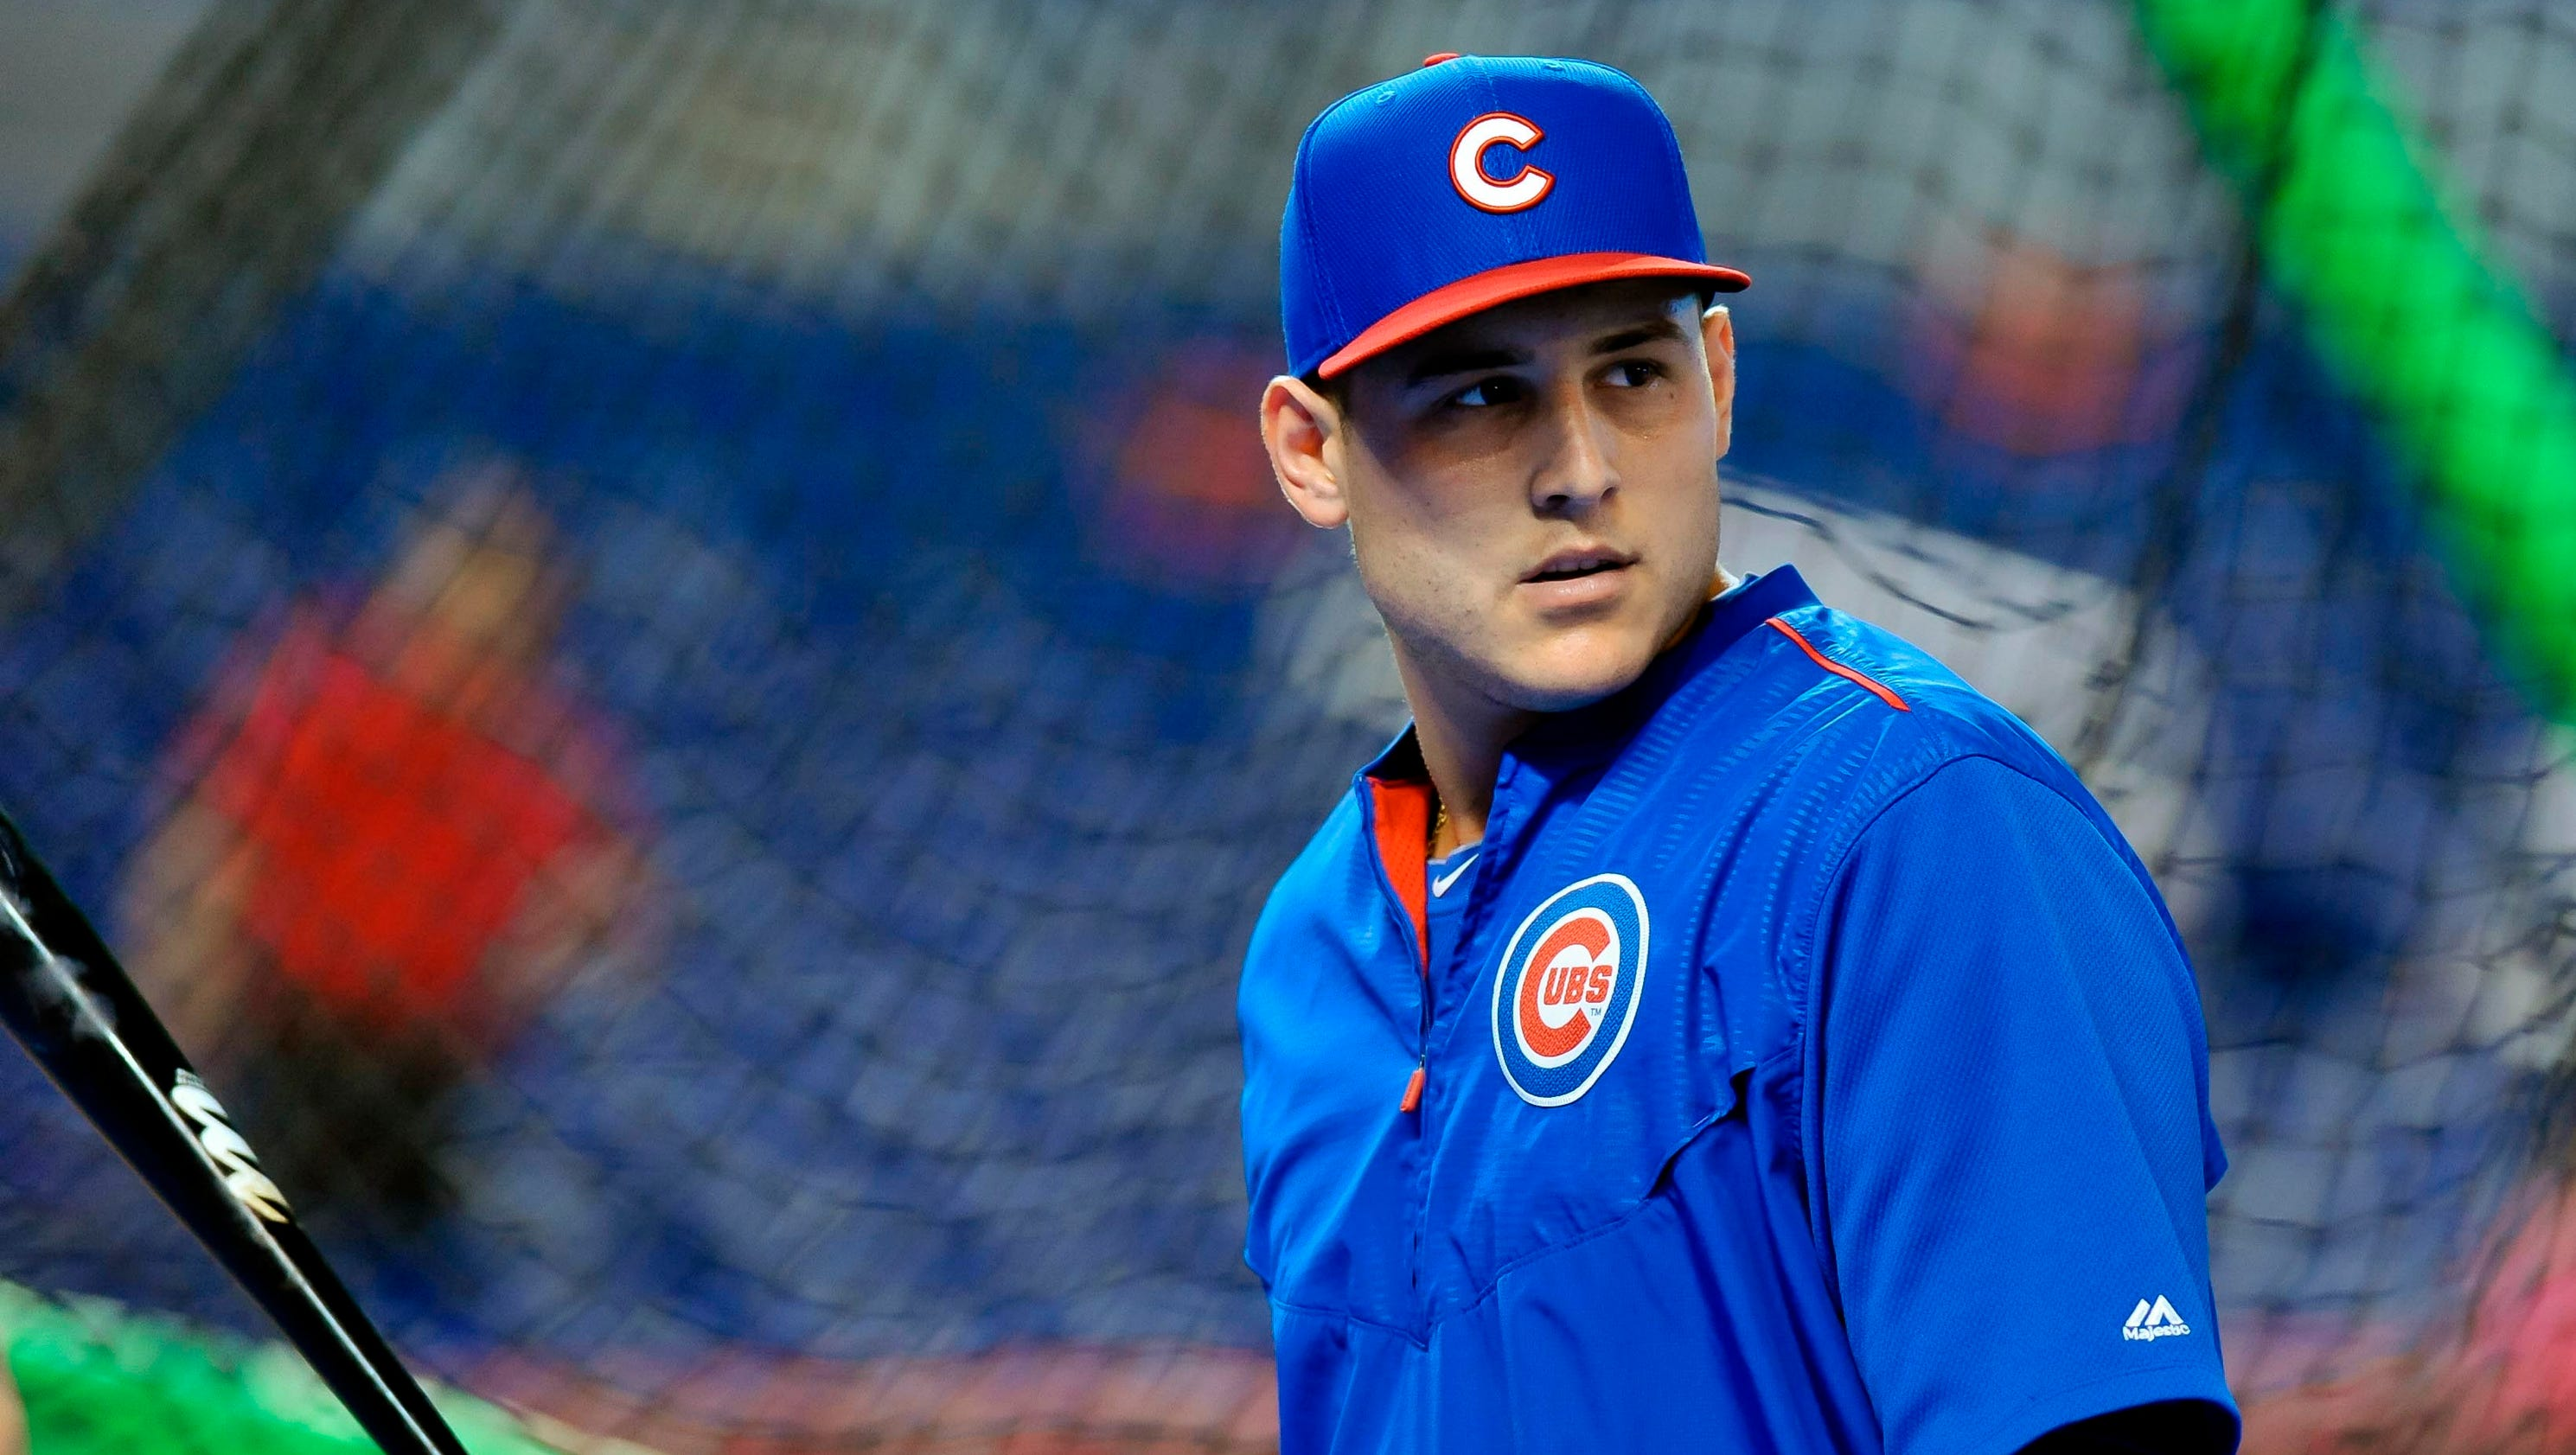 anthony rizzo on cubs u0026 39  playoff chances   u0026 39 we can do this u0026 39